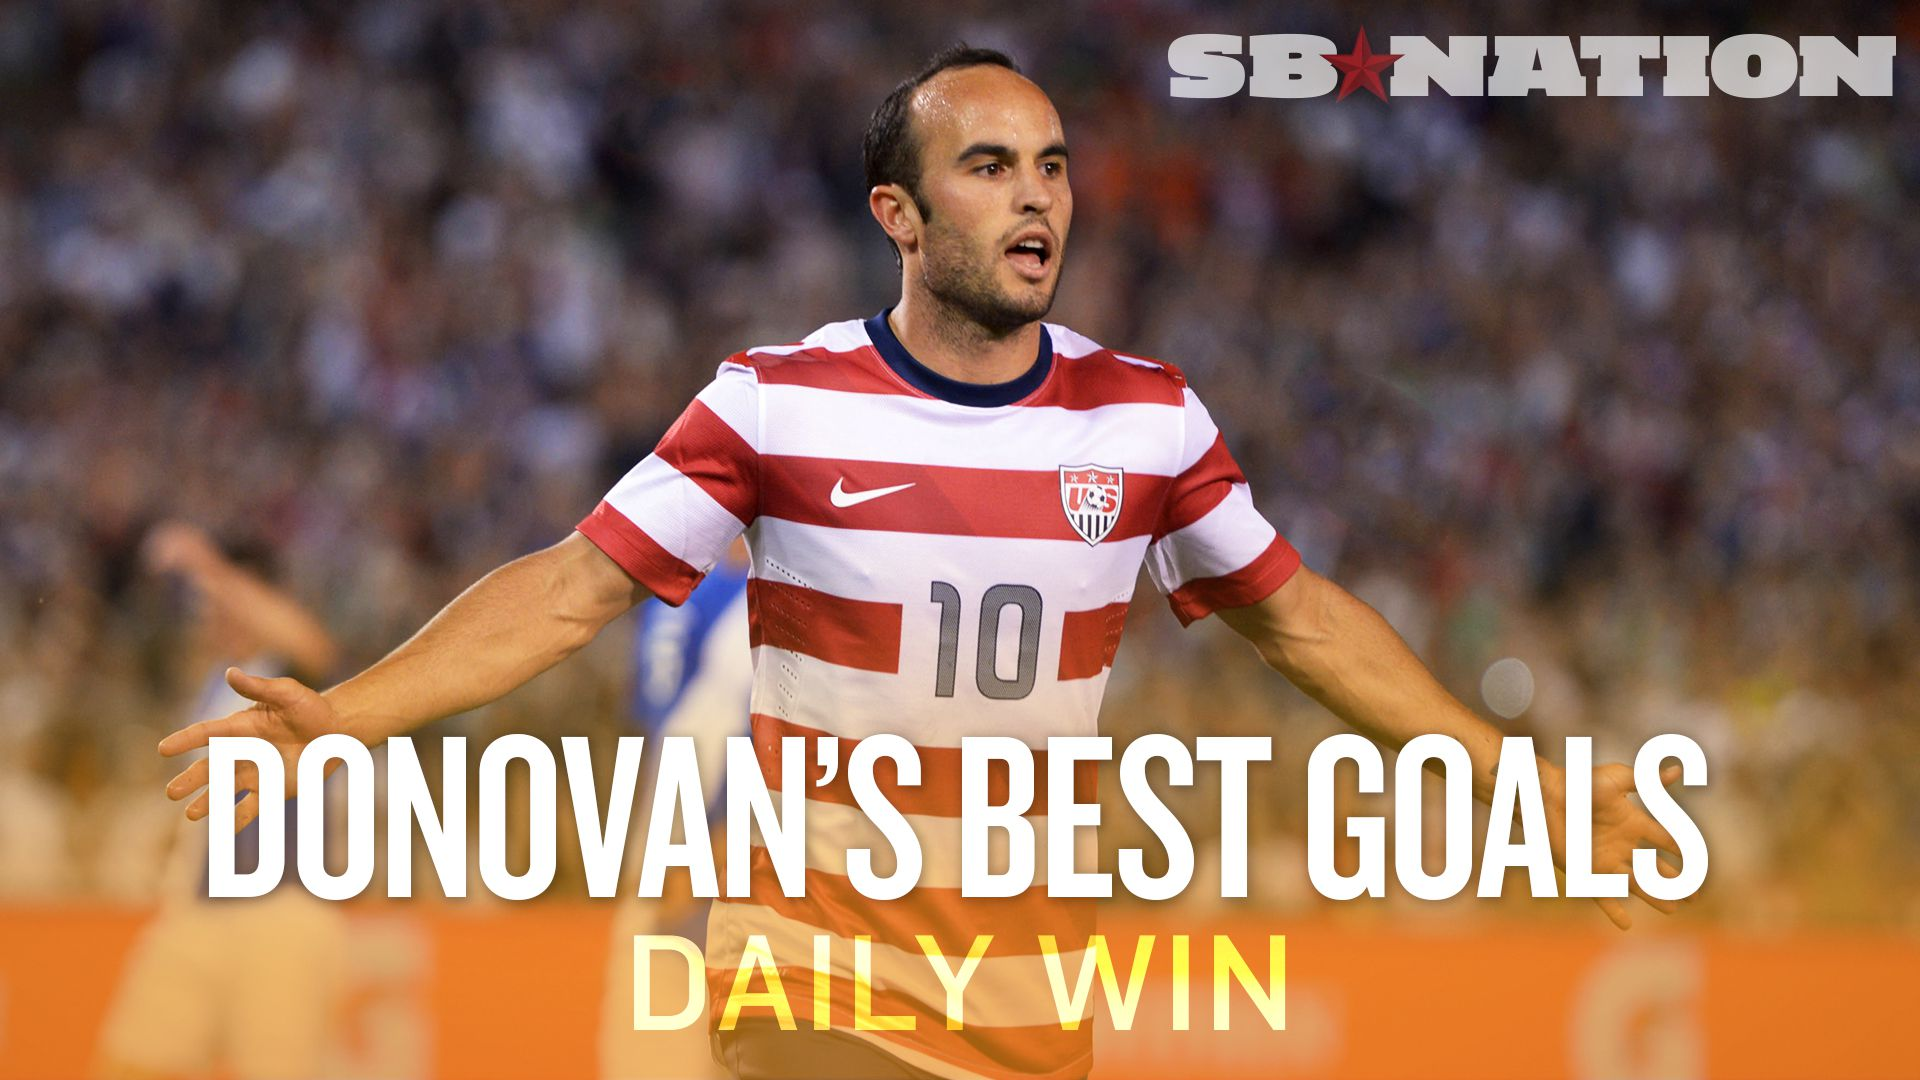 why landon donovans legacy couldnt carry him to the world cup sbnationcom